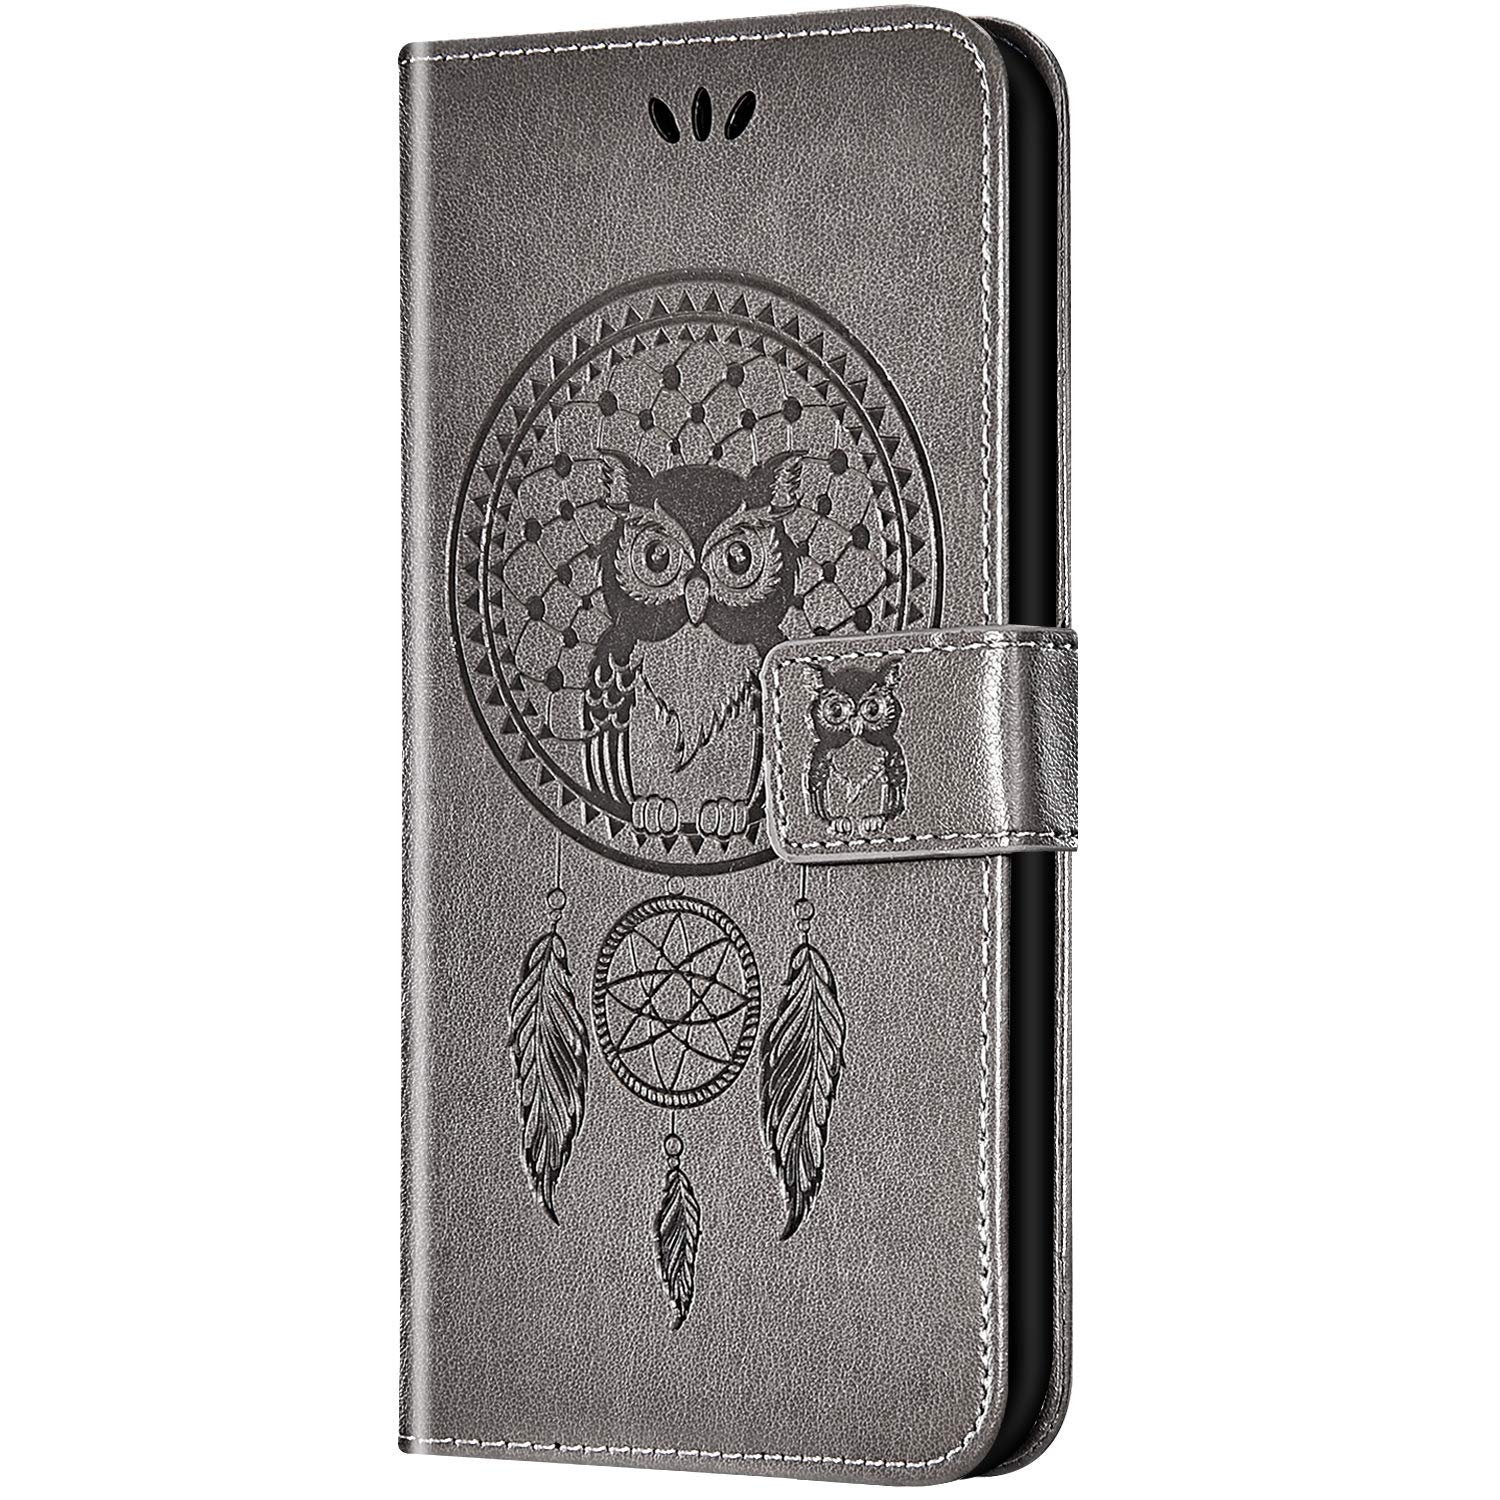 Case for Galaxy J3 2018 Flip Case Ultra Slim PU Leather Wallet with Card Holder/Slot and Magnetic Closure Shockproof Cartoon Animal Owl Embossed Protective Cover for Galaxy J3 2018,Gray by ikasus